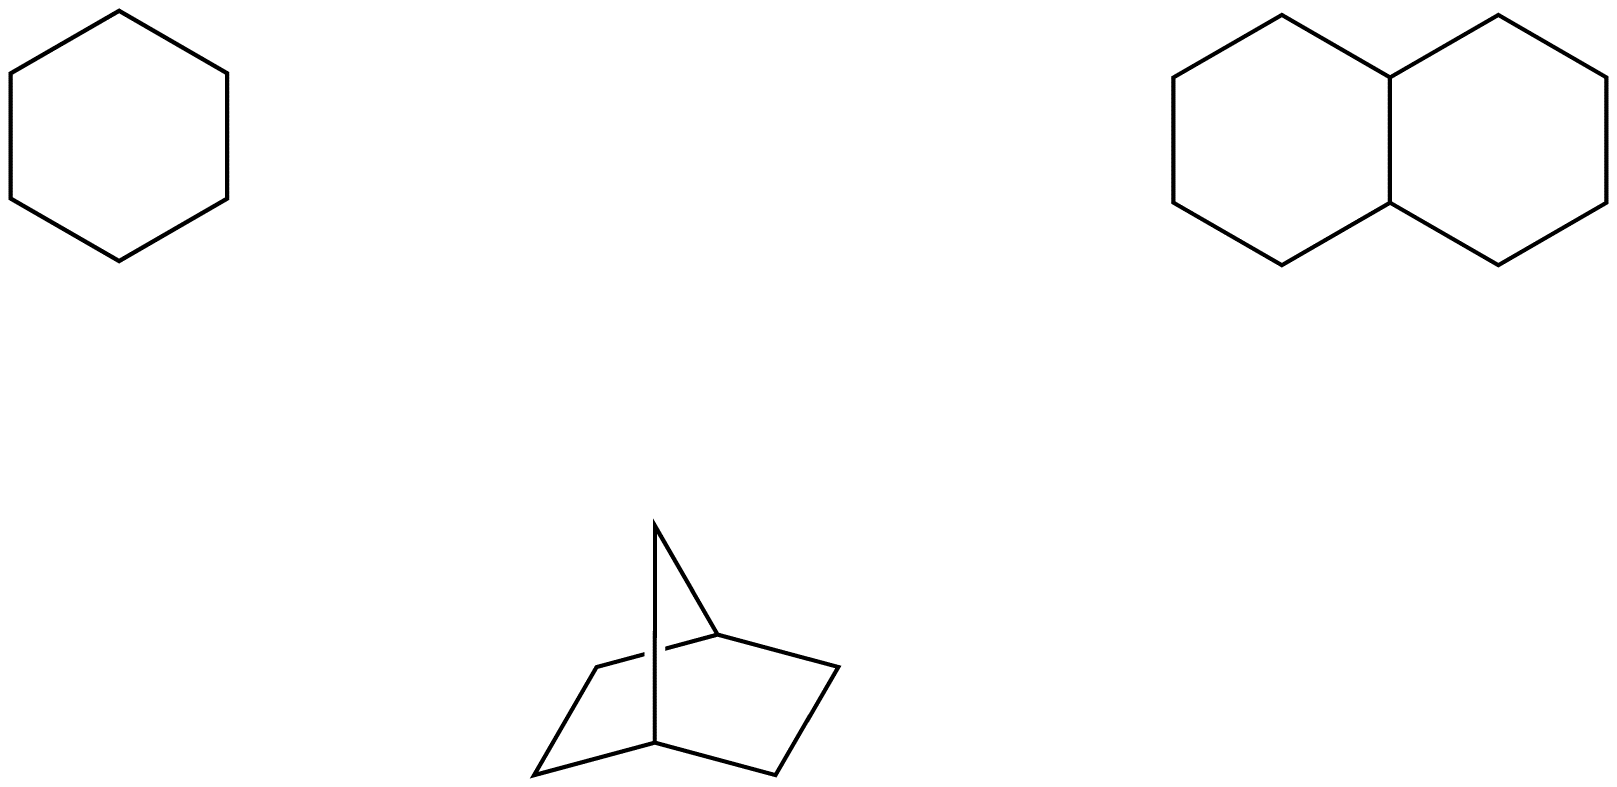 Parent Cycloalkane Ochempal